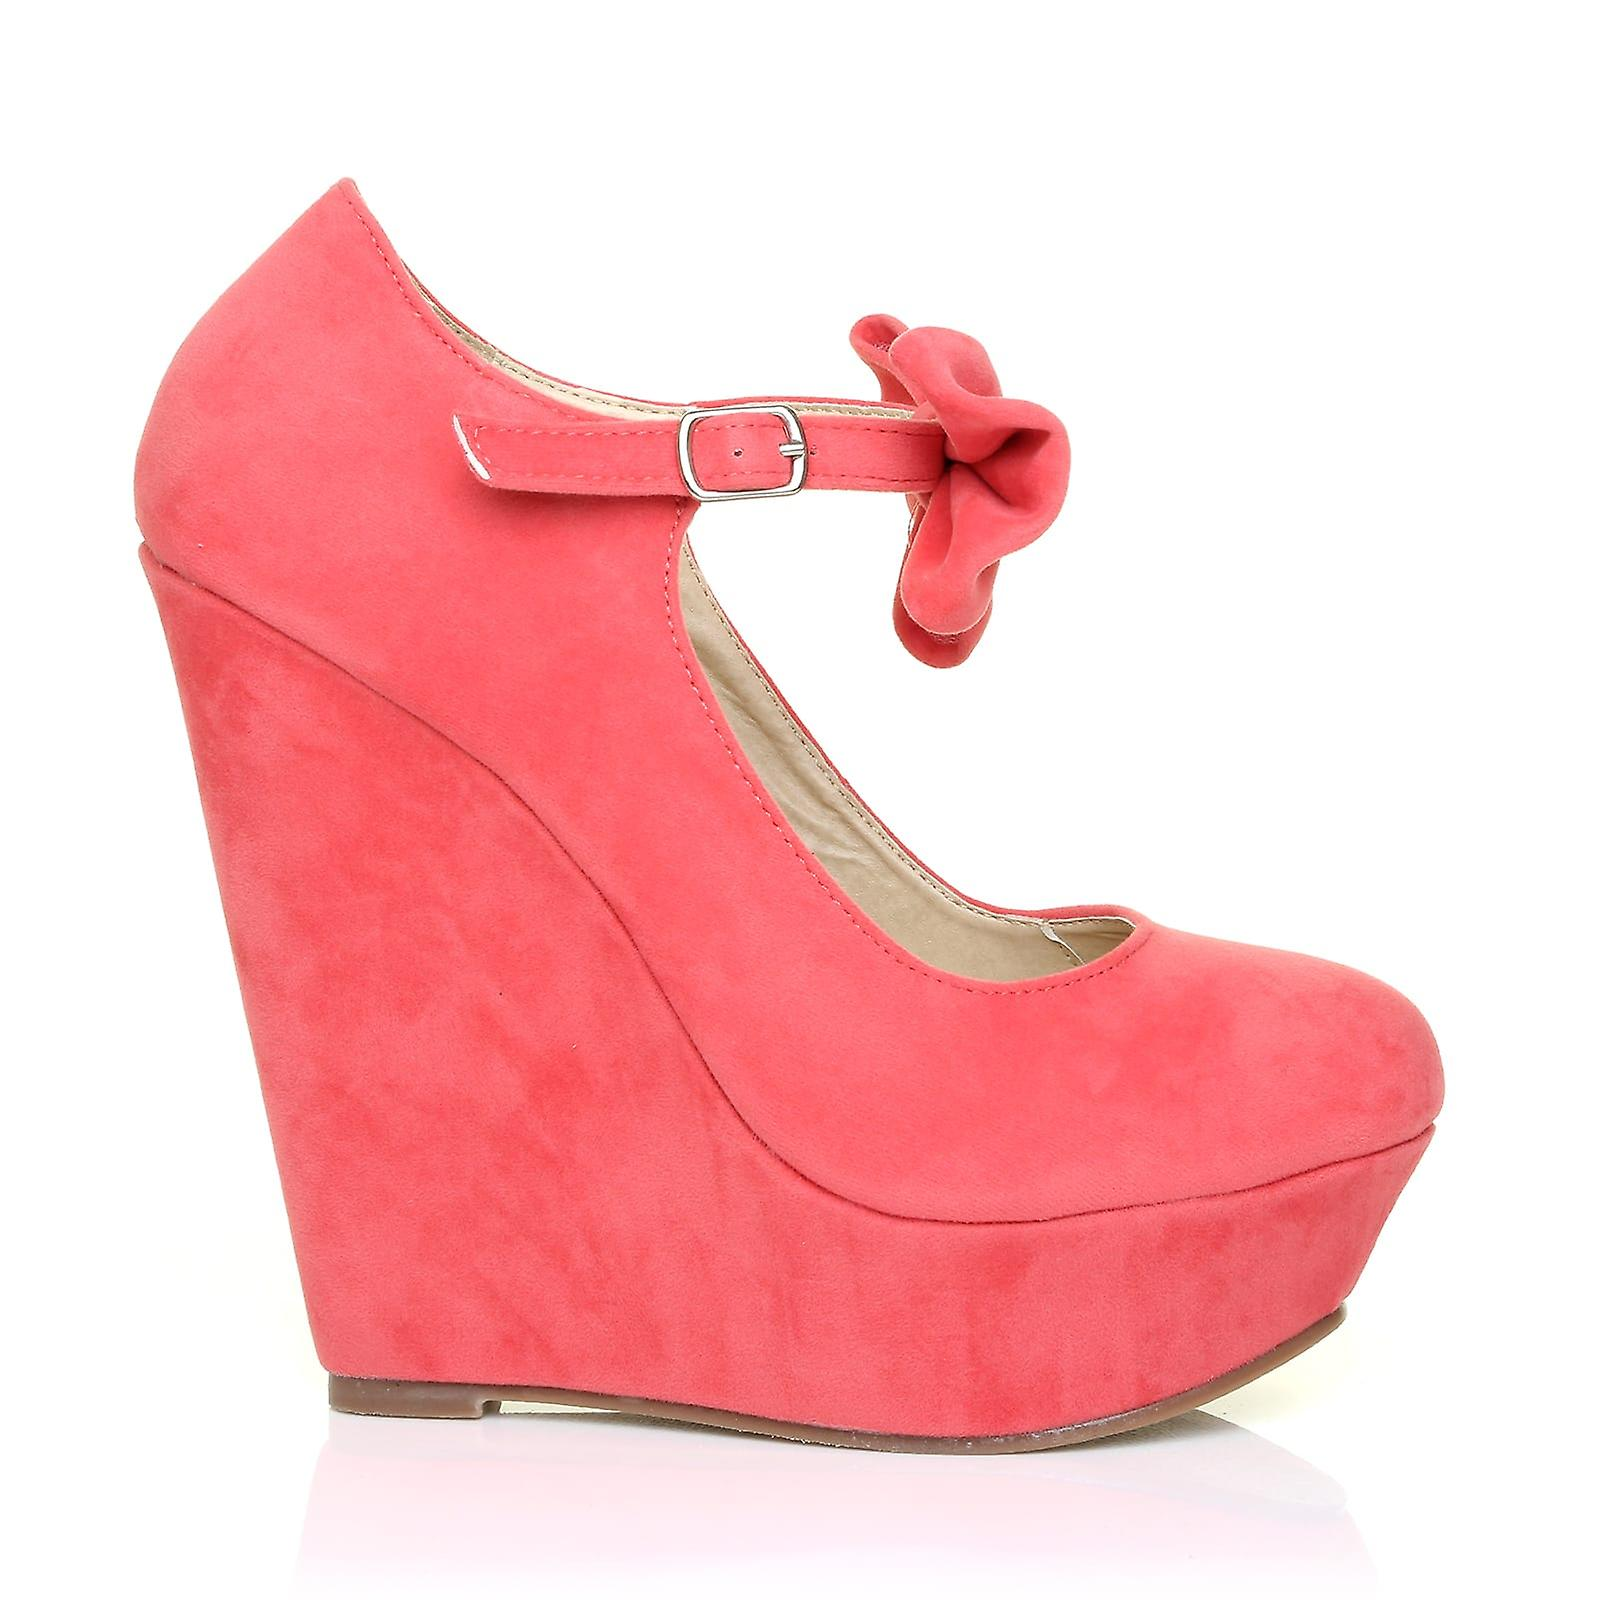 KIMS Coral Suede Ankle Strap Adjustable Bow High Heel Wedge Shoes